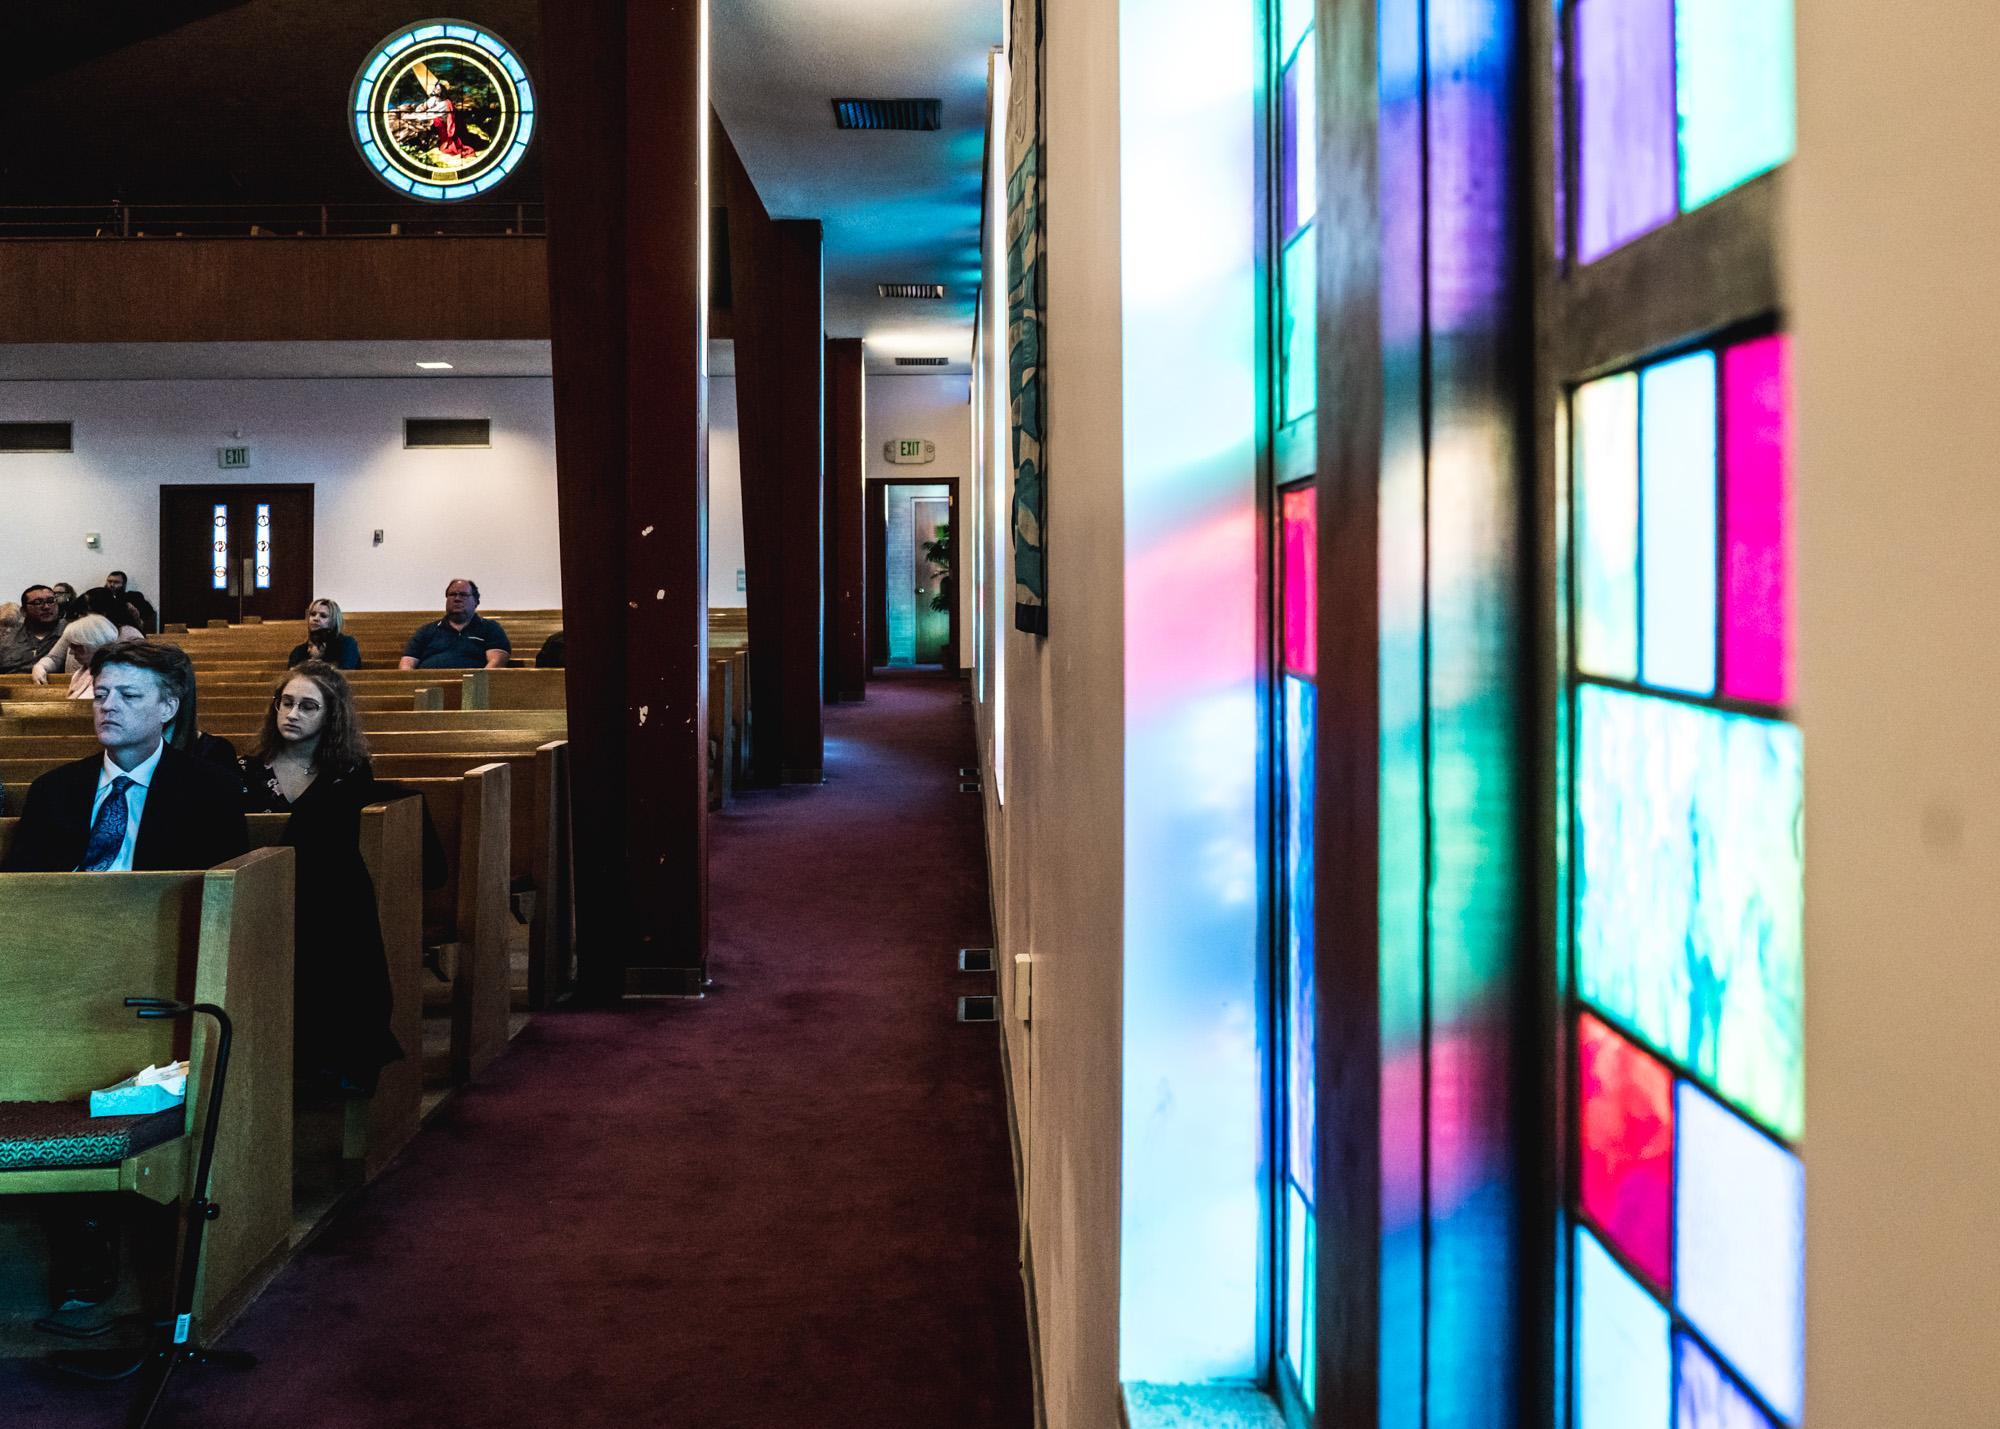 View of the stained glass windows inside the Greeley United Methodist Church in Greeley, Colorado during the memorial service of Barbara Richard